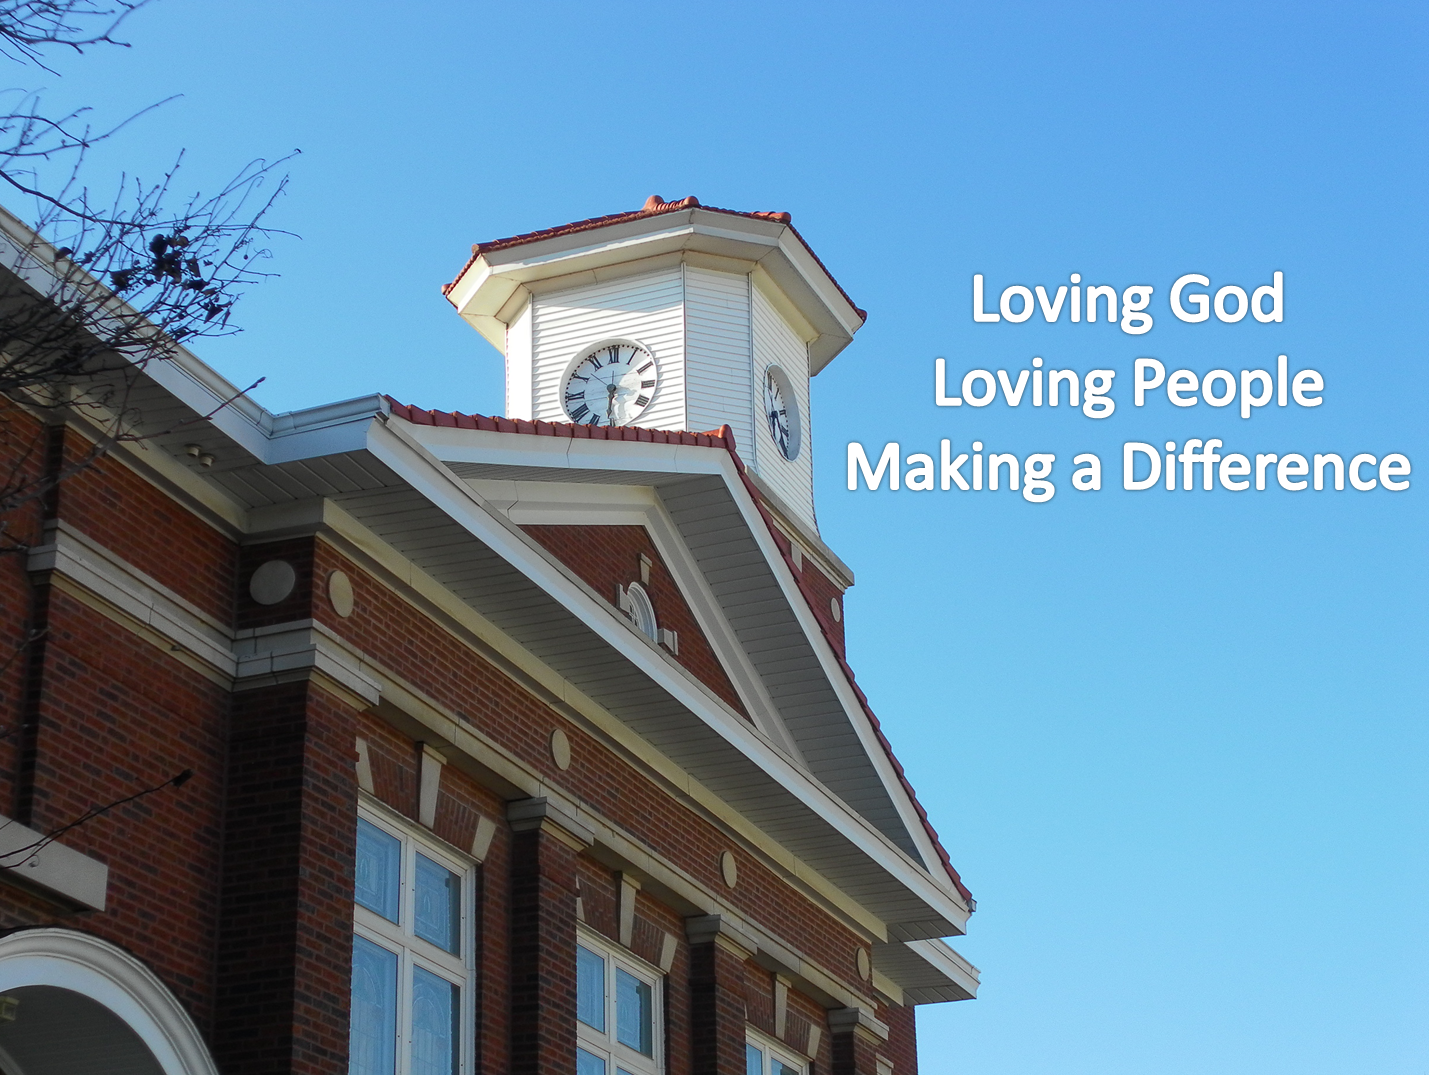 Loving-God-Loving-People-Making-a-Difference